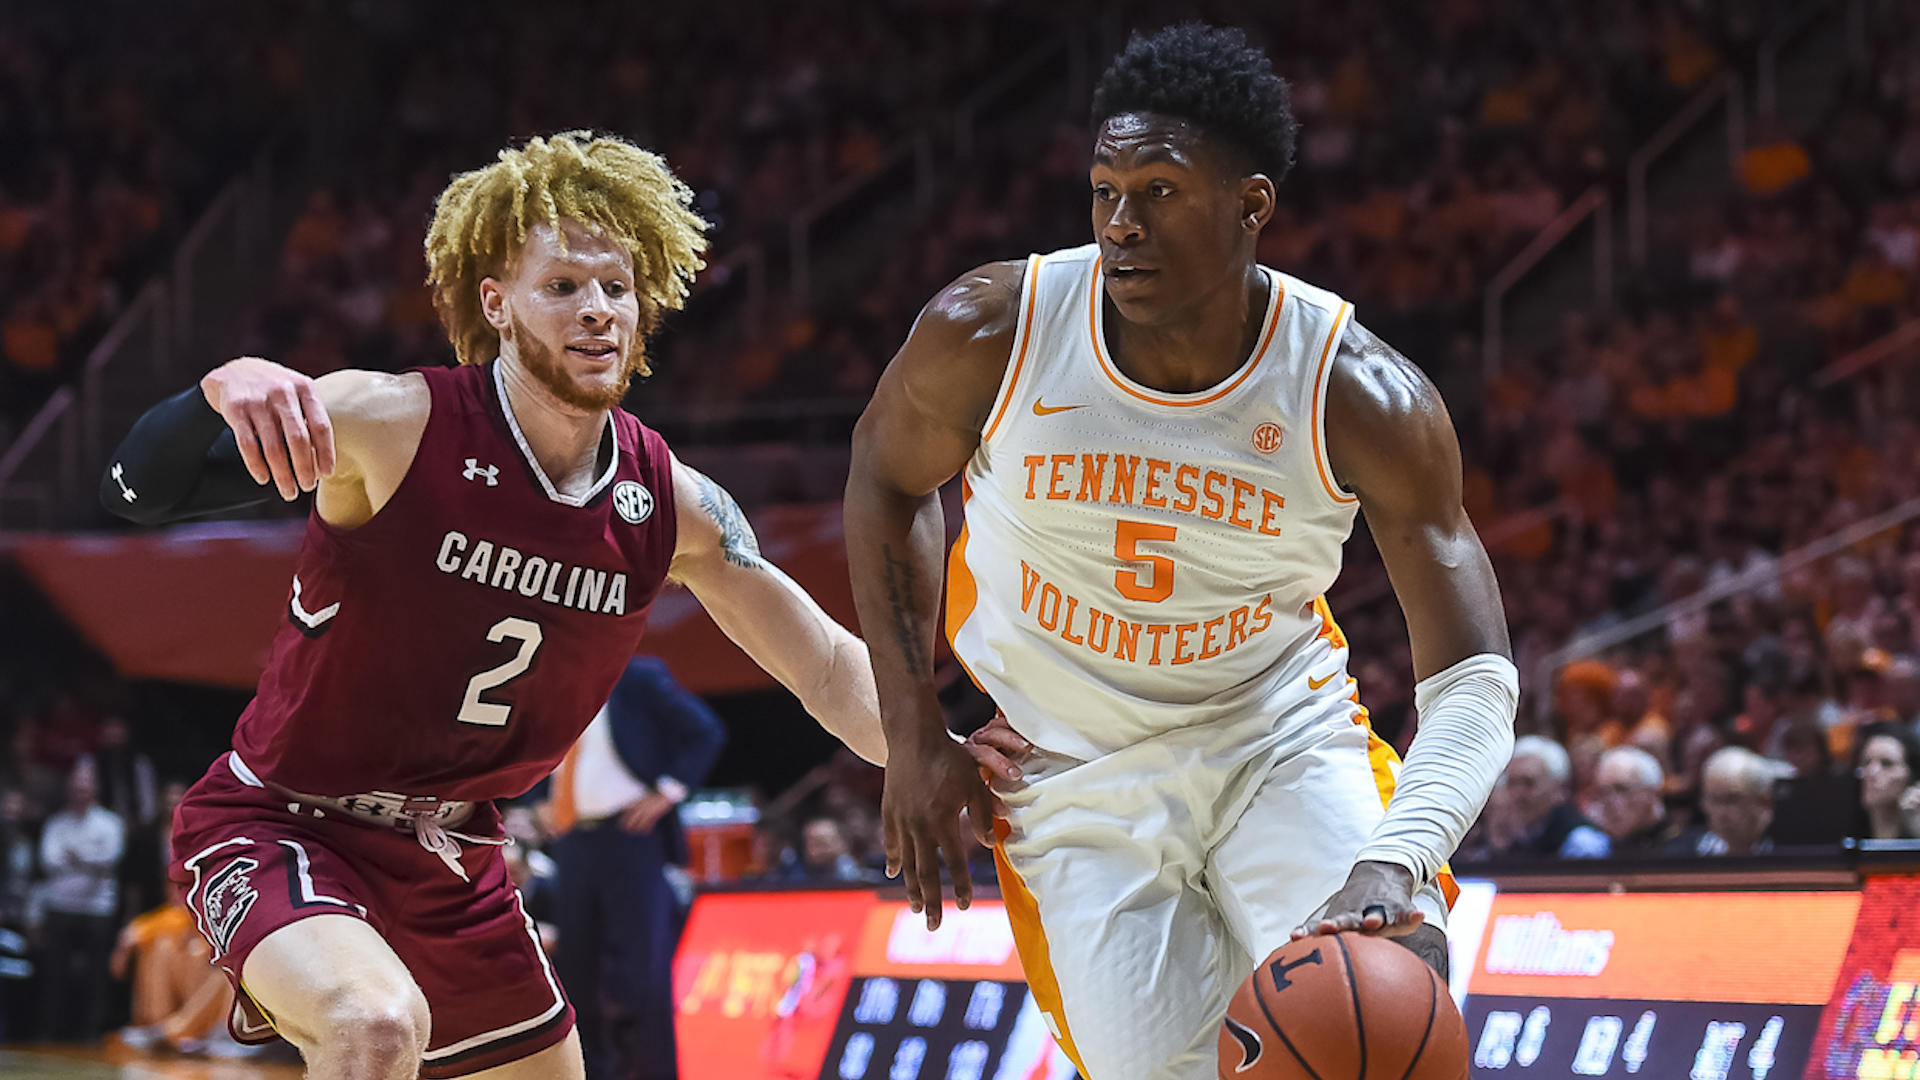 College basketball picks, odds, schedule: Predictions for Kentucky vs. Tennessee, and other big games Saturday